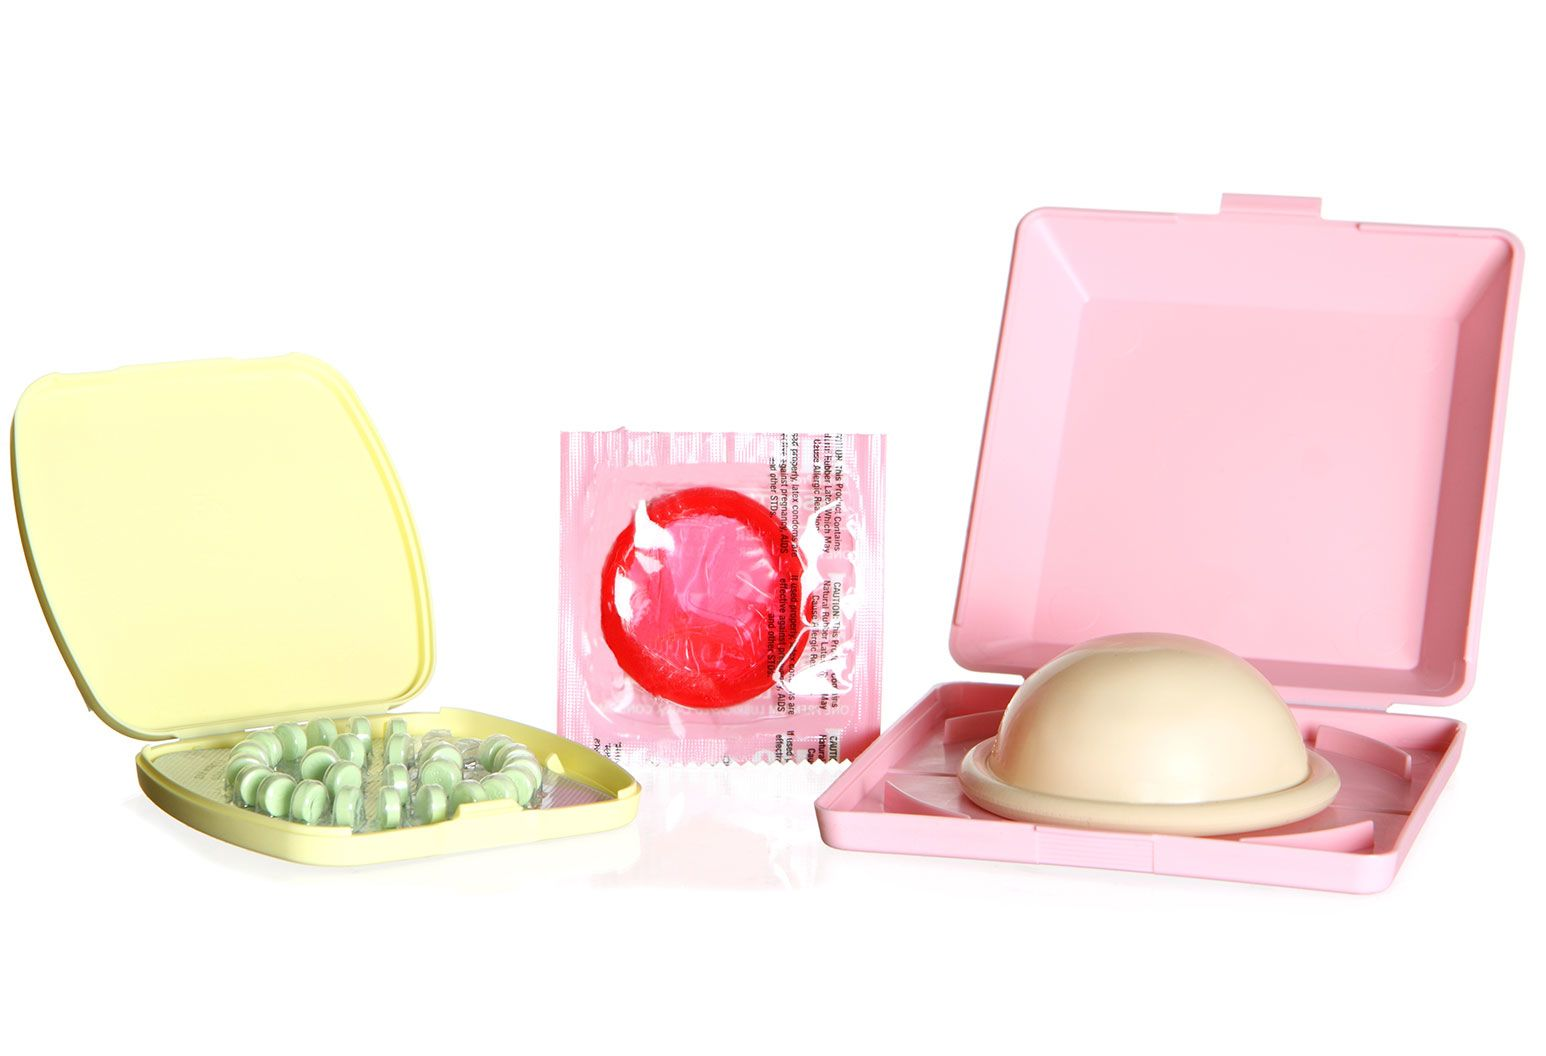 A yellow pill box containing green pills, an upright red latex condom in packaging, and a pink box holding a diaphragm are positioned next to each other.